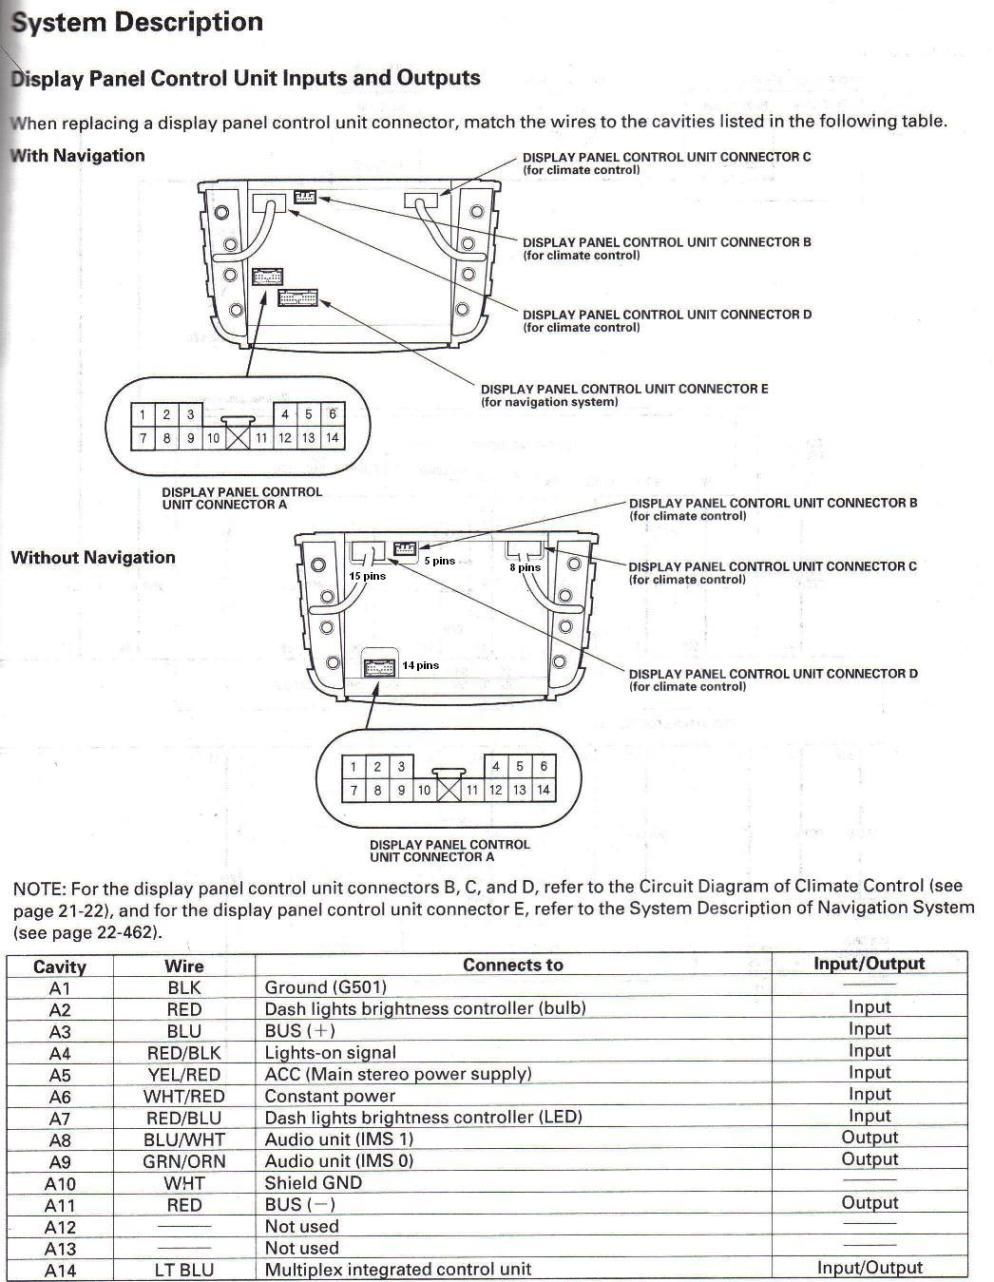 80 2004_non_navi_wiring_diagram_dc35447c211715fc1ded8e2e3a92beb519bc6f9f 04 '06 non navi to '07 '08 non navi radio display swap acurazine 2004 acura tsx wiring diagram at reclaimingppi.co